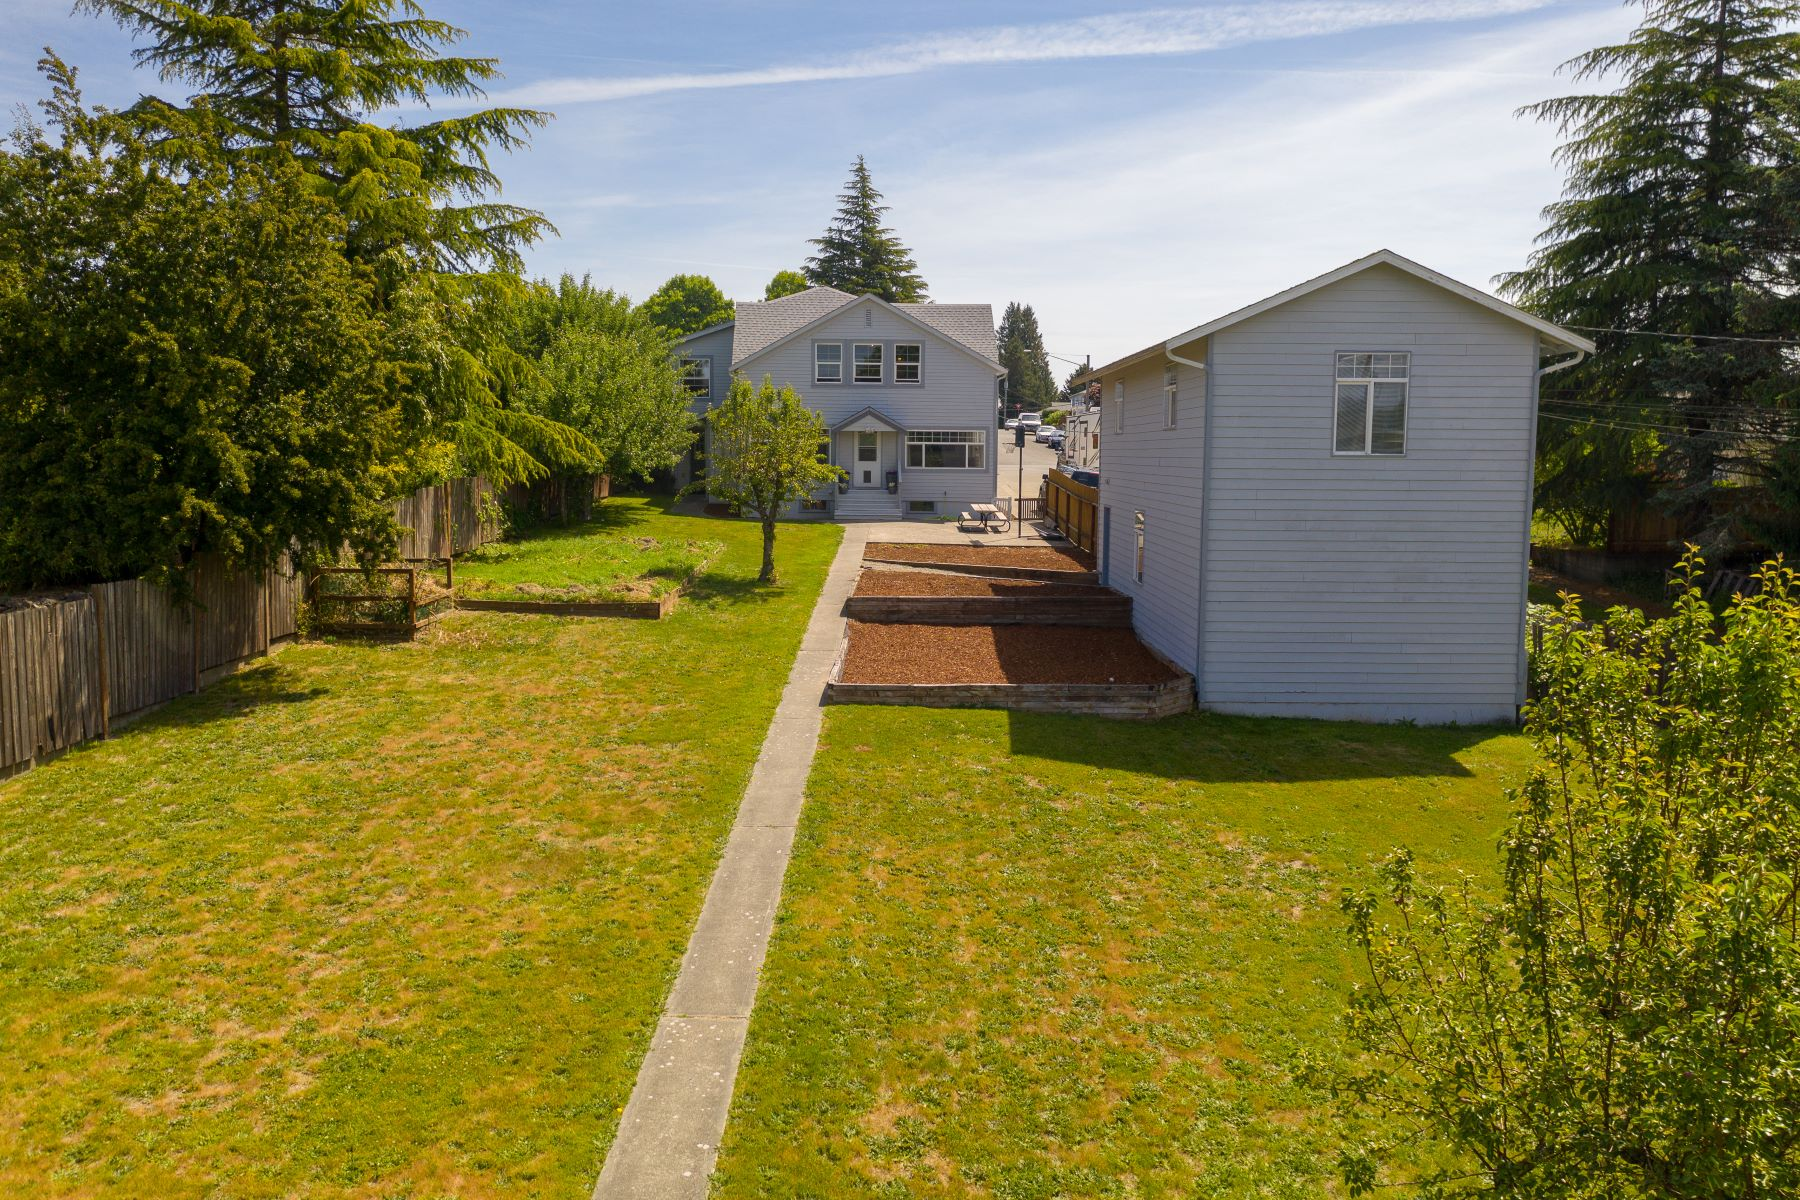 Single Family Homes for Sale at 2224 Perry Avenue, Bremerton, WA 98310 2224 Perry Avenue Bremerton, Washington 98310 United States